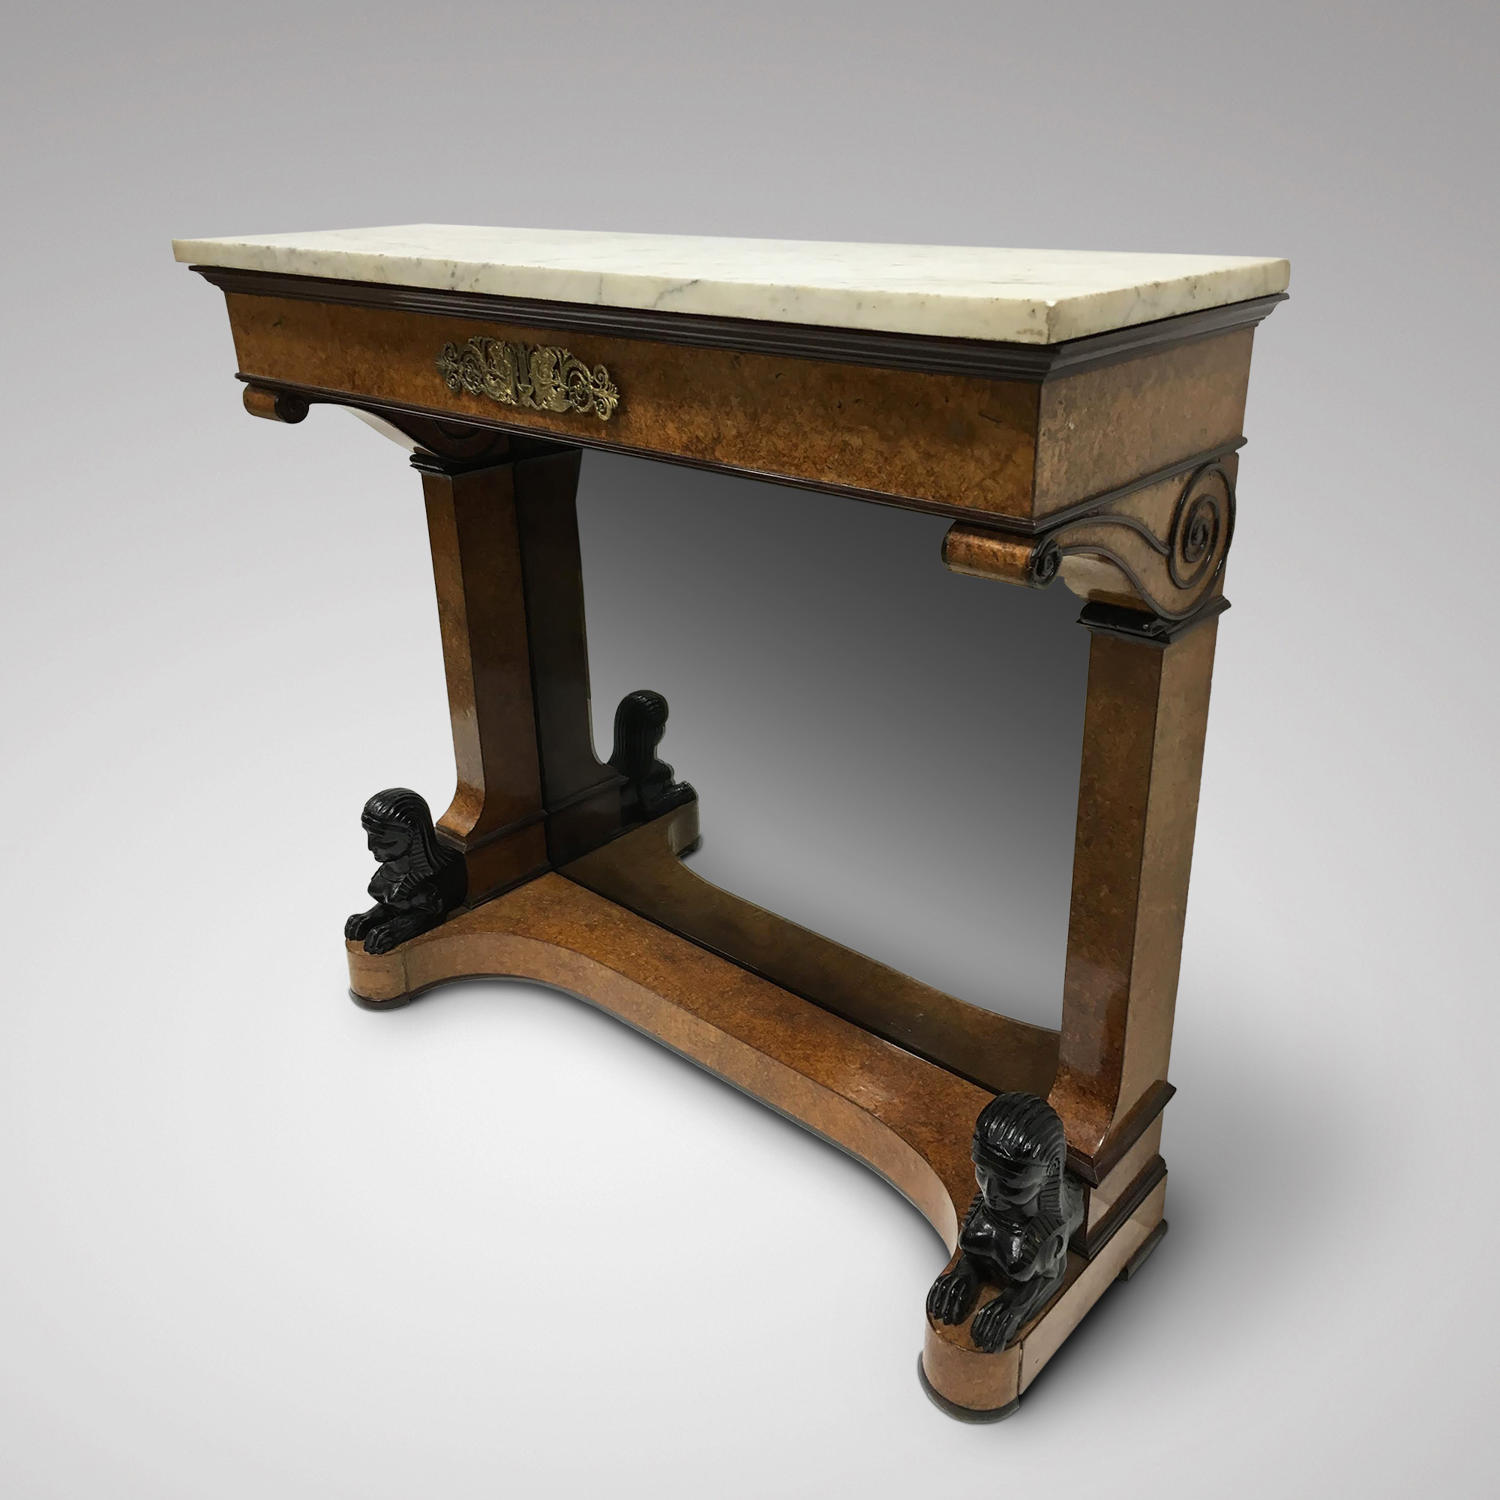 A SMALL AMBOYNA VENEERED EMPIRE CONSOLE